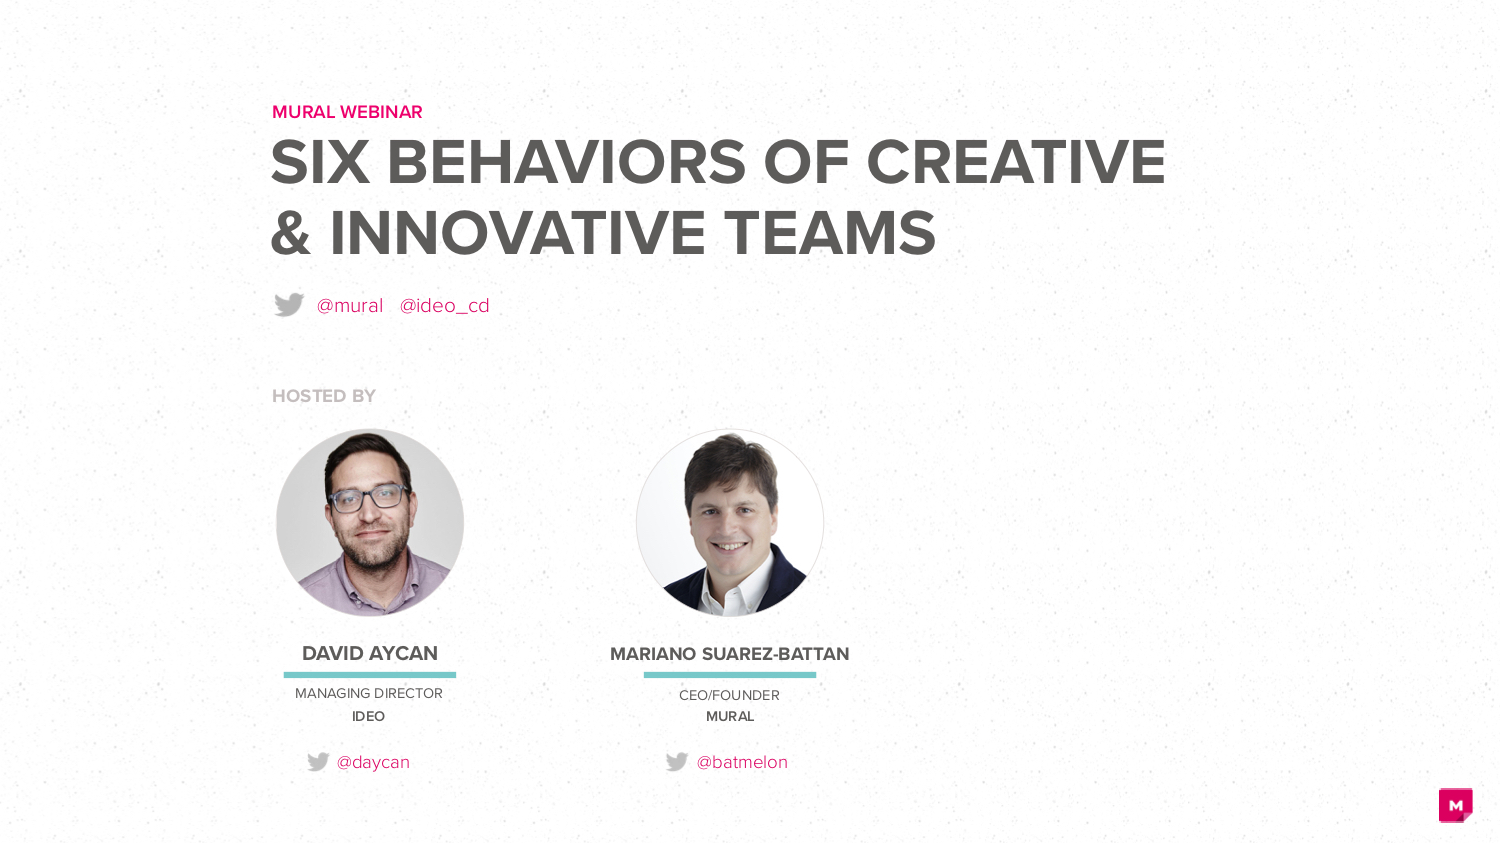 MURAL WEBINAR: Six Behaviors of Creative & Innovative Teams